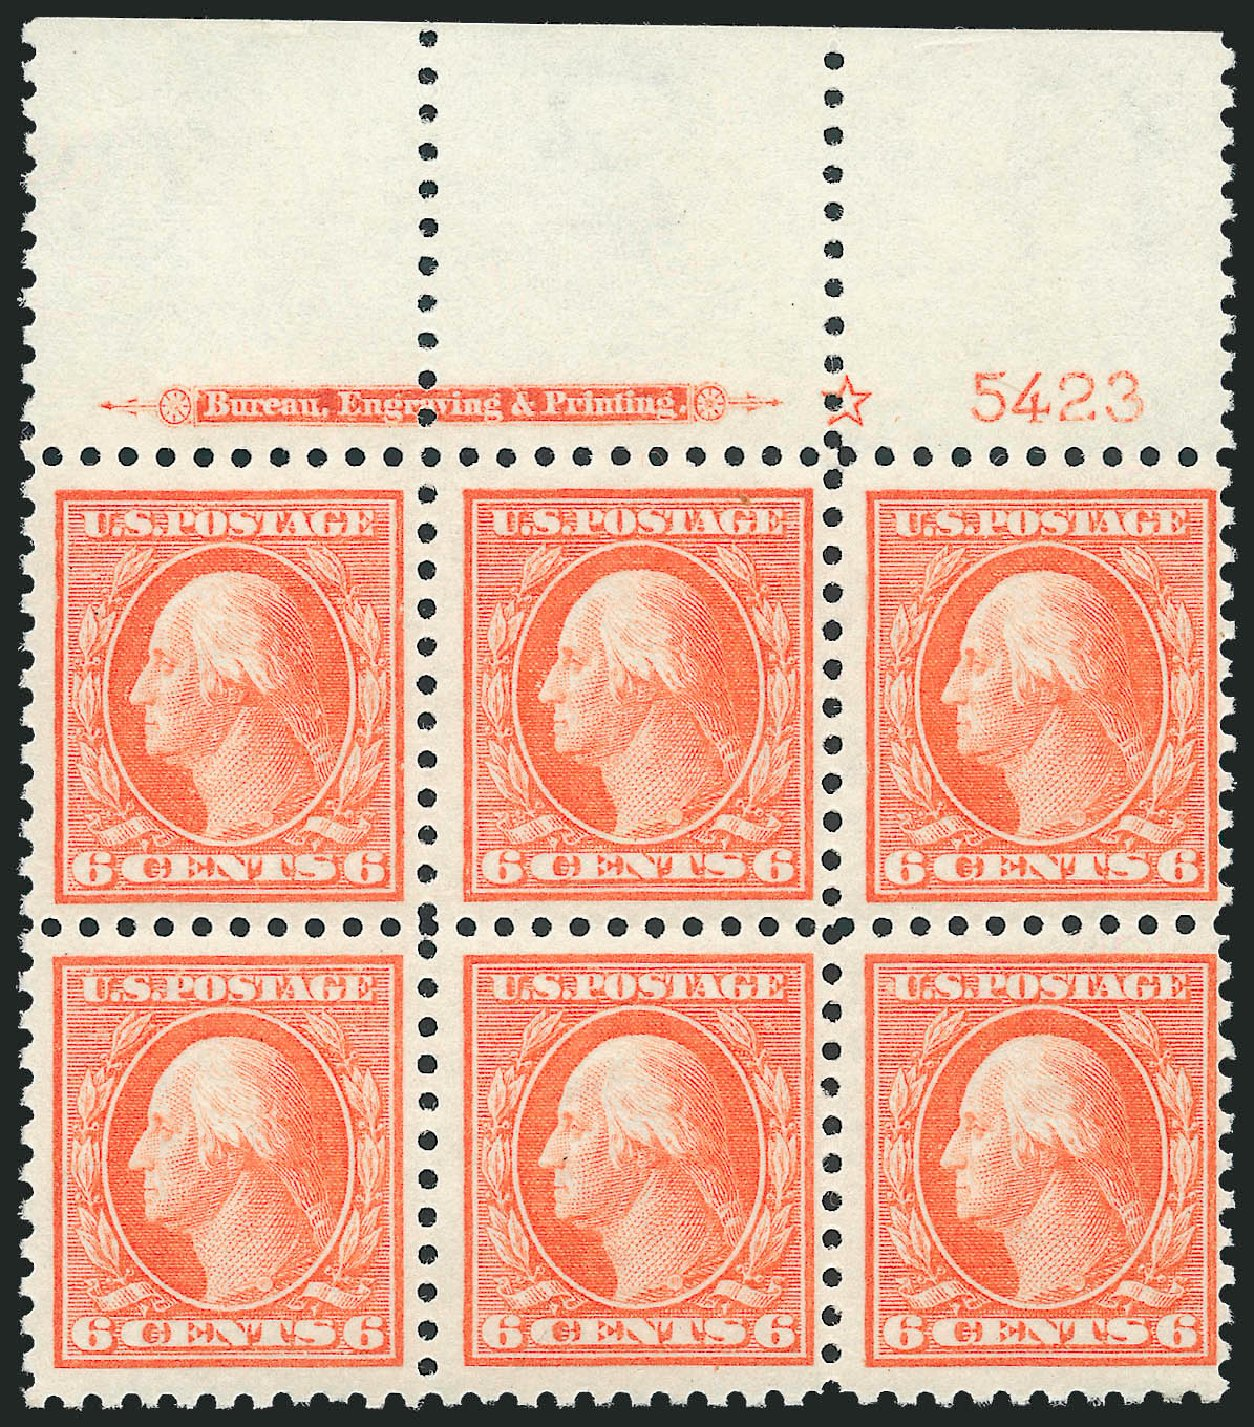 6c Red Orange Scott 429 Mint N H Wide Top Imprint Star And Plate No 5423 Block Of Six Fresh Attractive Bright Pastel Color Fine Very Fine